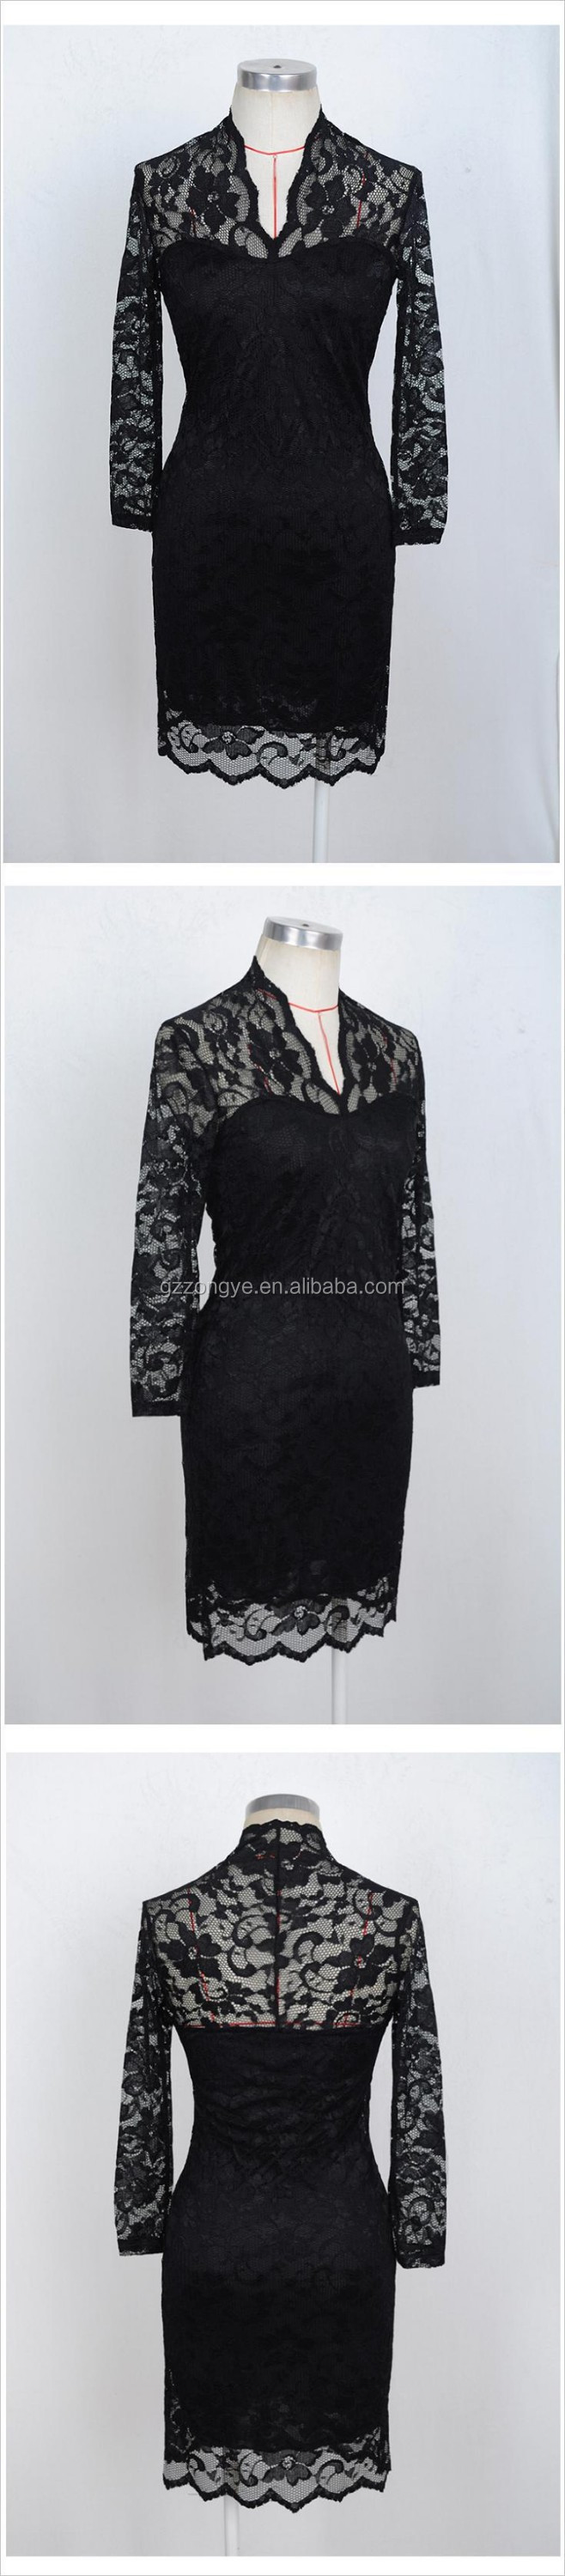 OEM apparel new fashion elegant women's black lace party dress